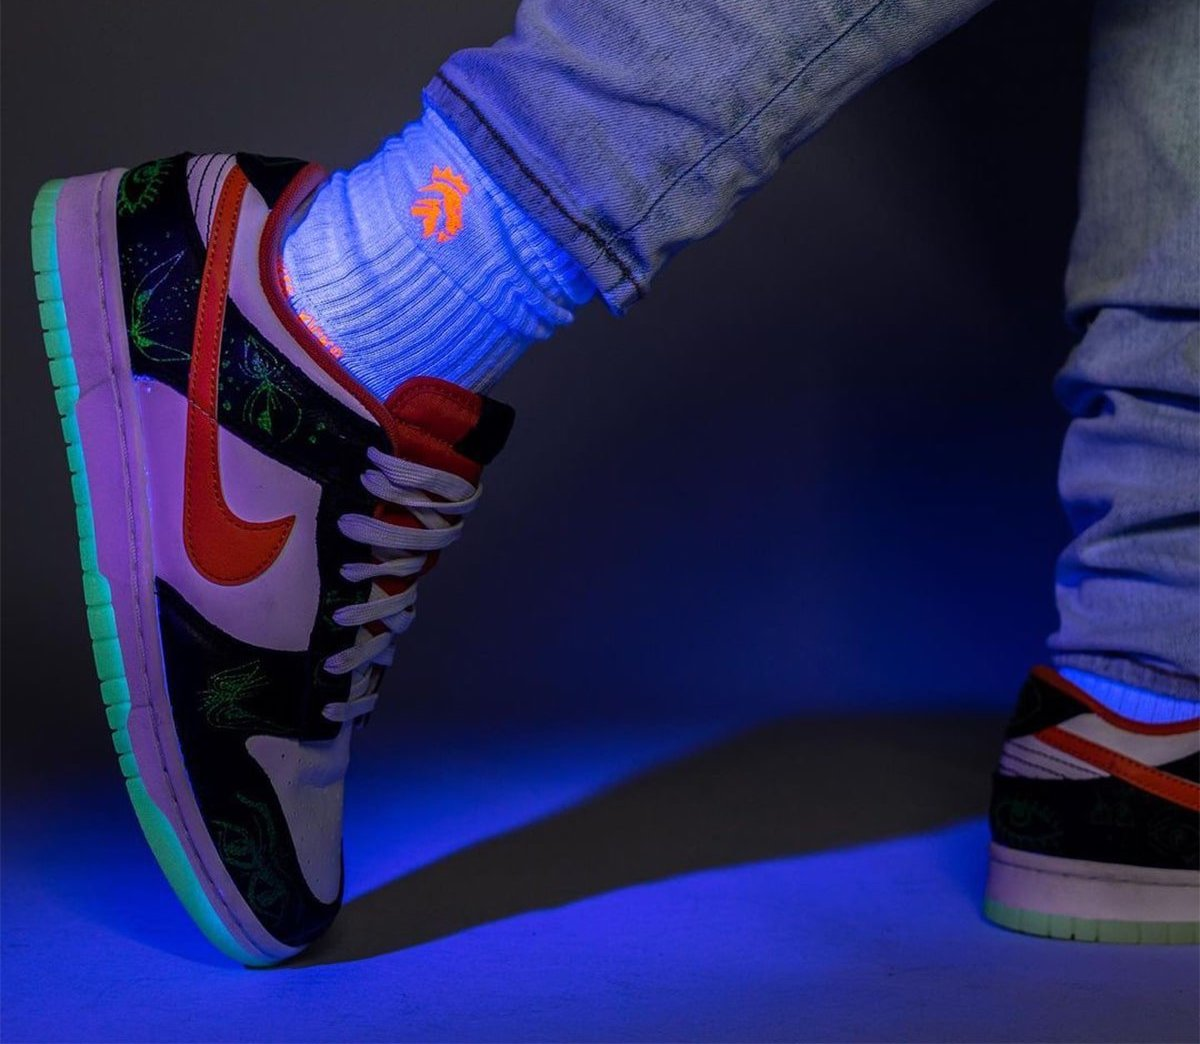 Swoosh, SB Dunk Low, Nike Dunk Low, Nike Dunk, NIKE, FORCE 1, Dunk Low, Dunk